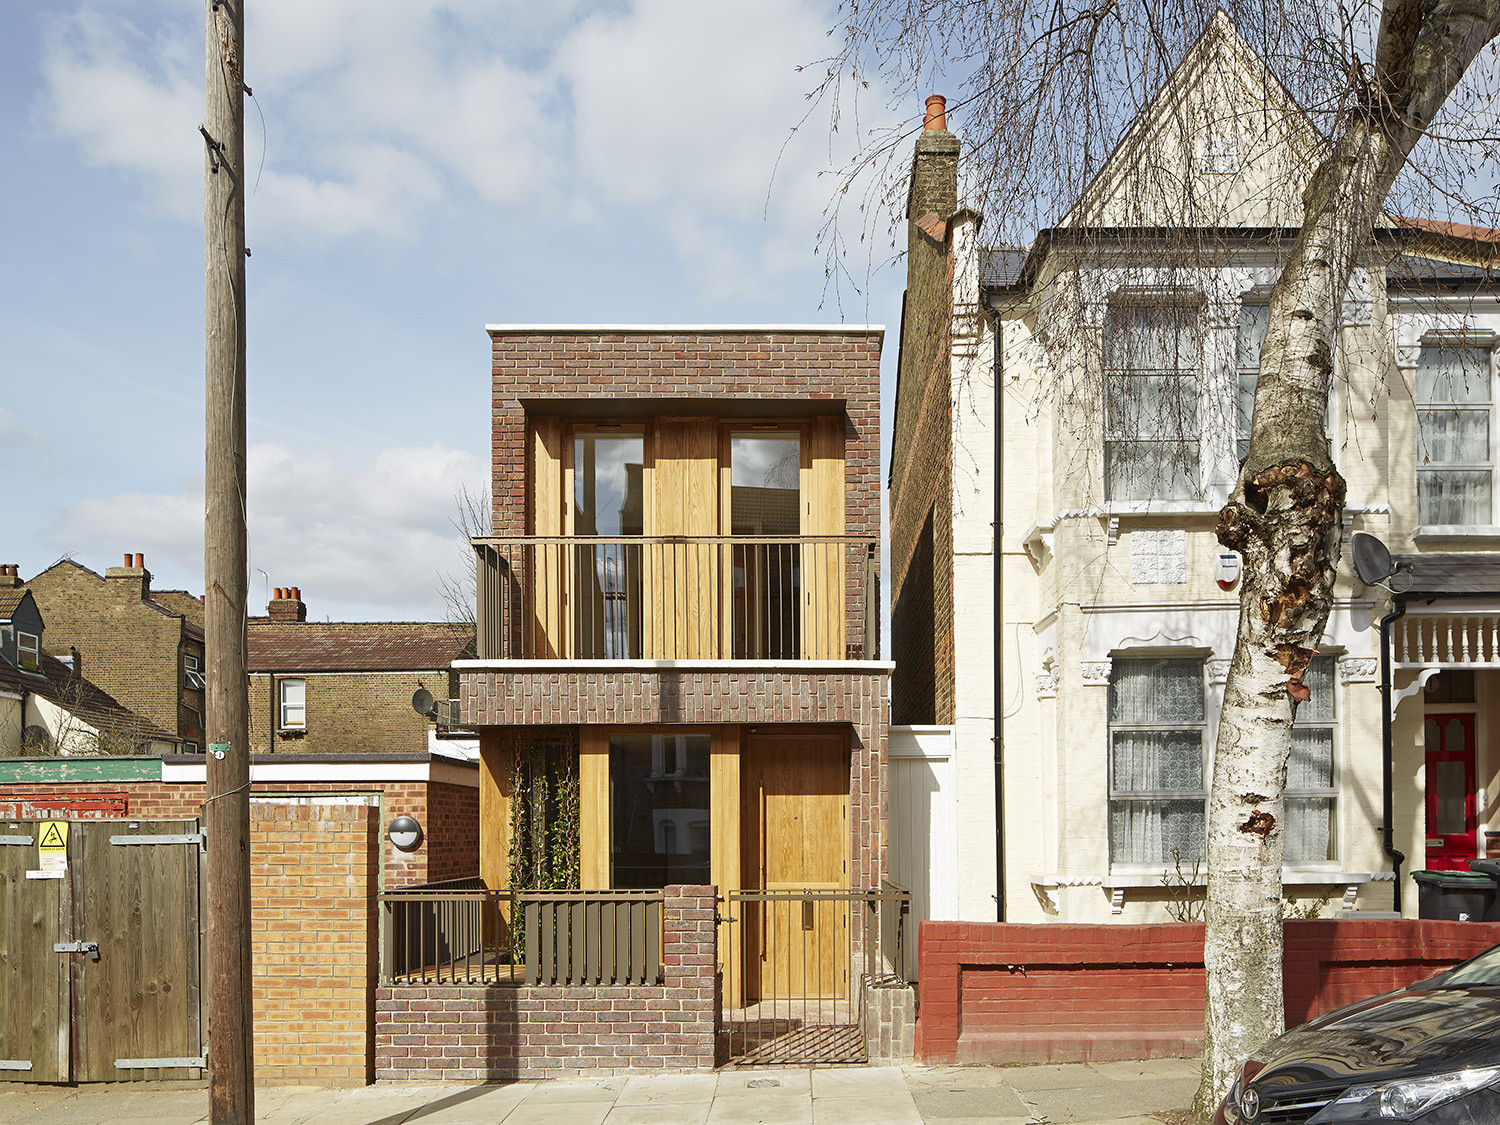 Haringey Brick House / Satish Jassal Architects, © Paul Riddle